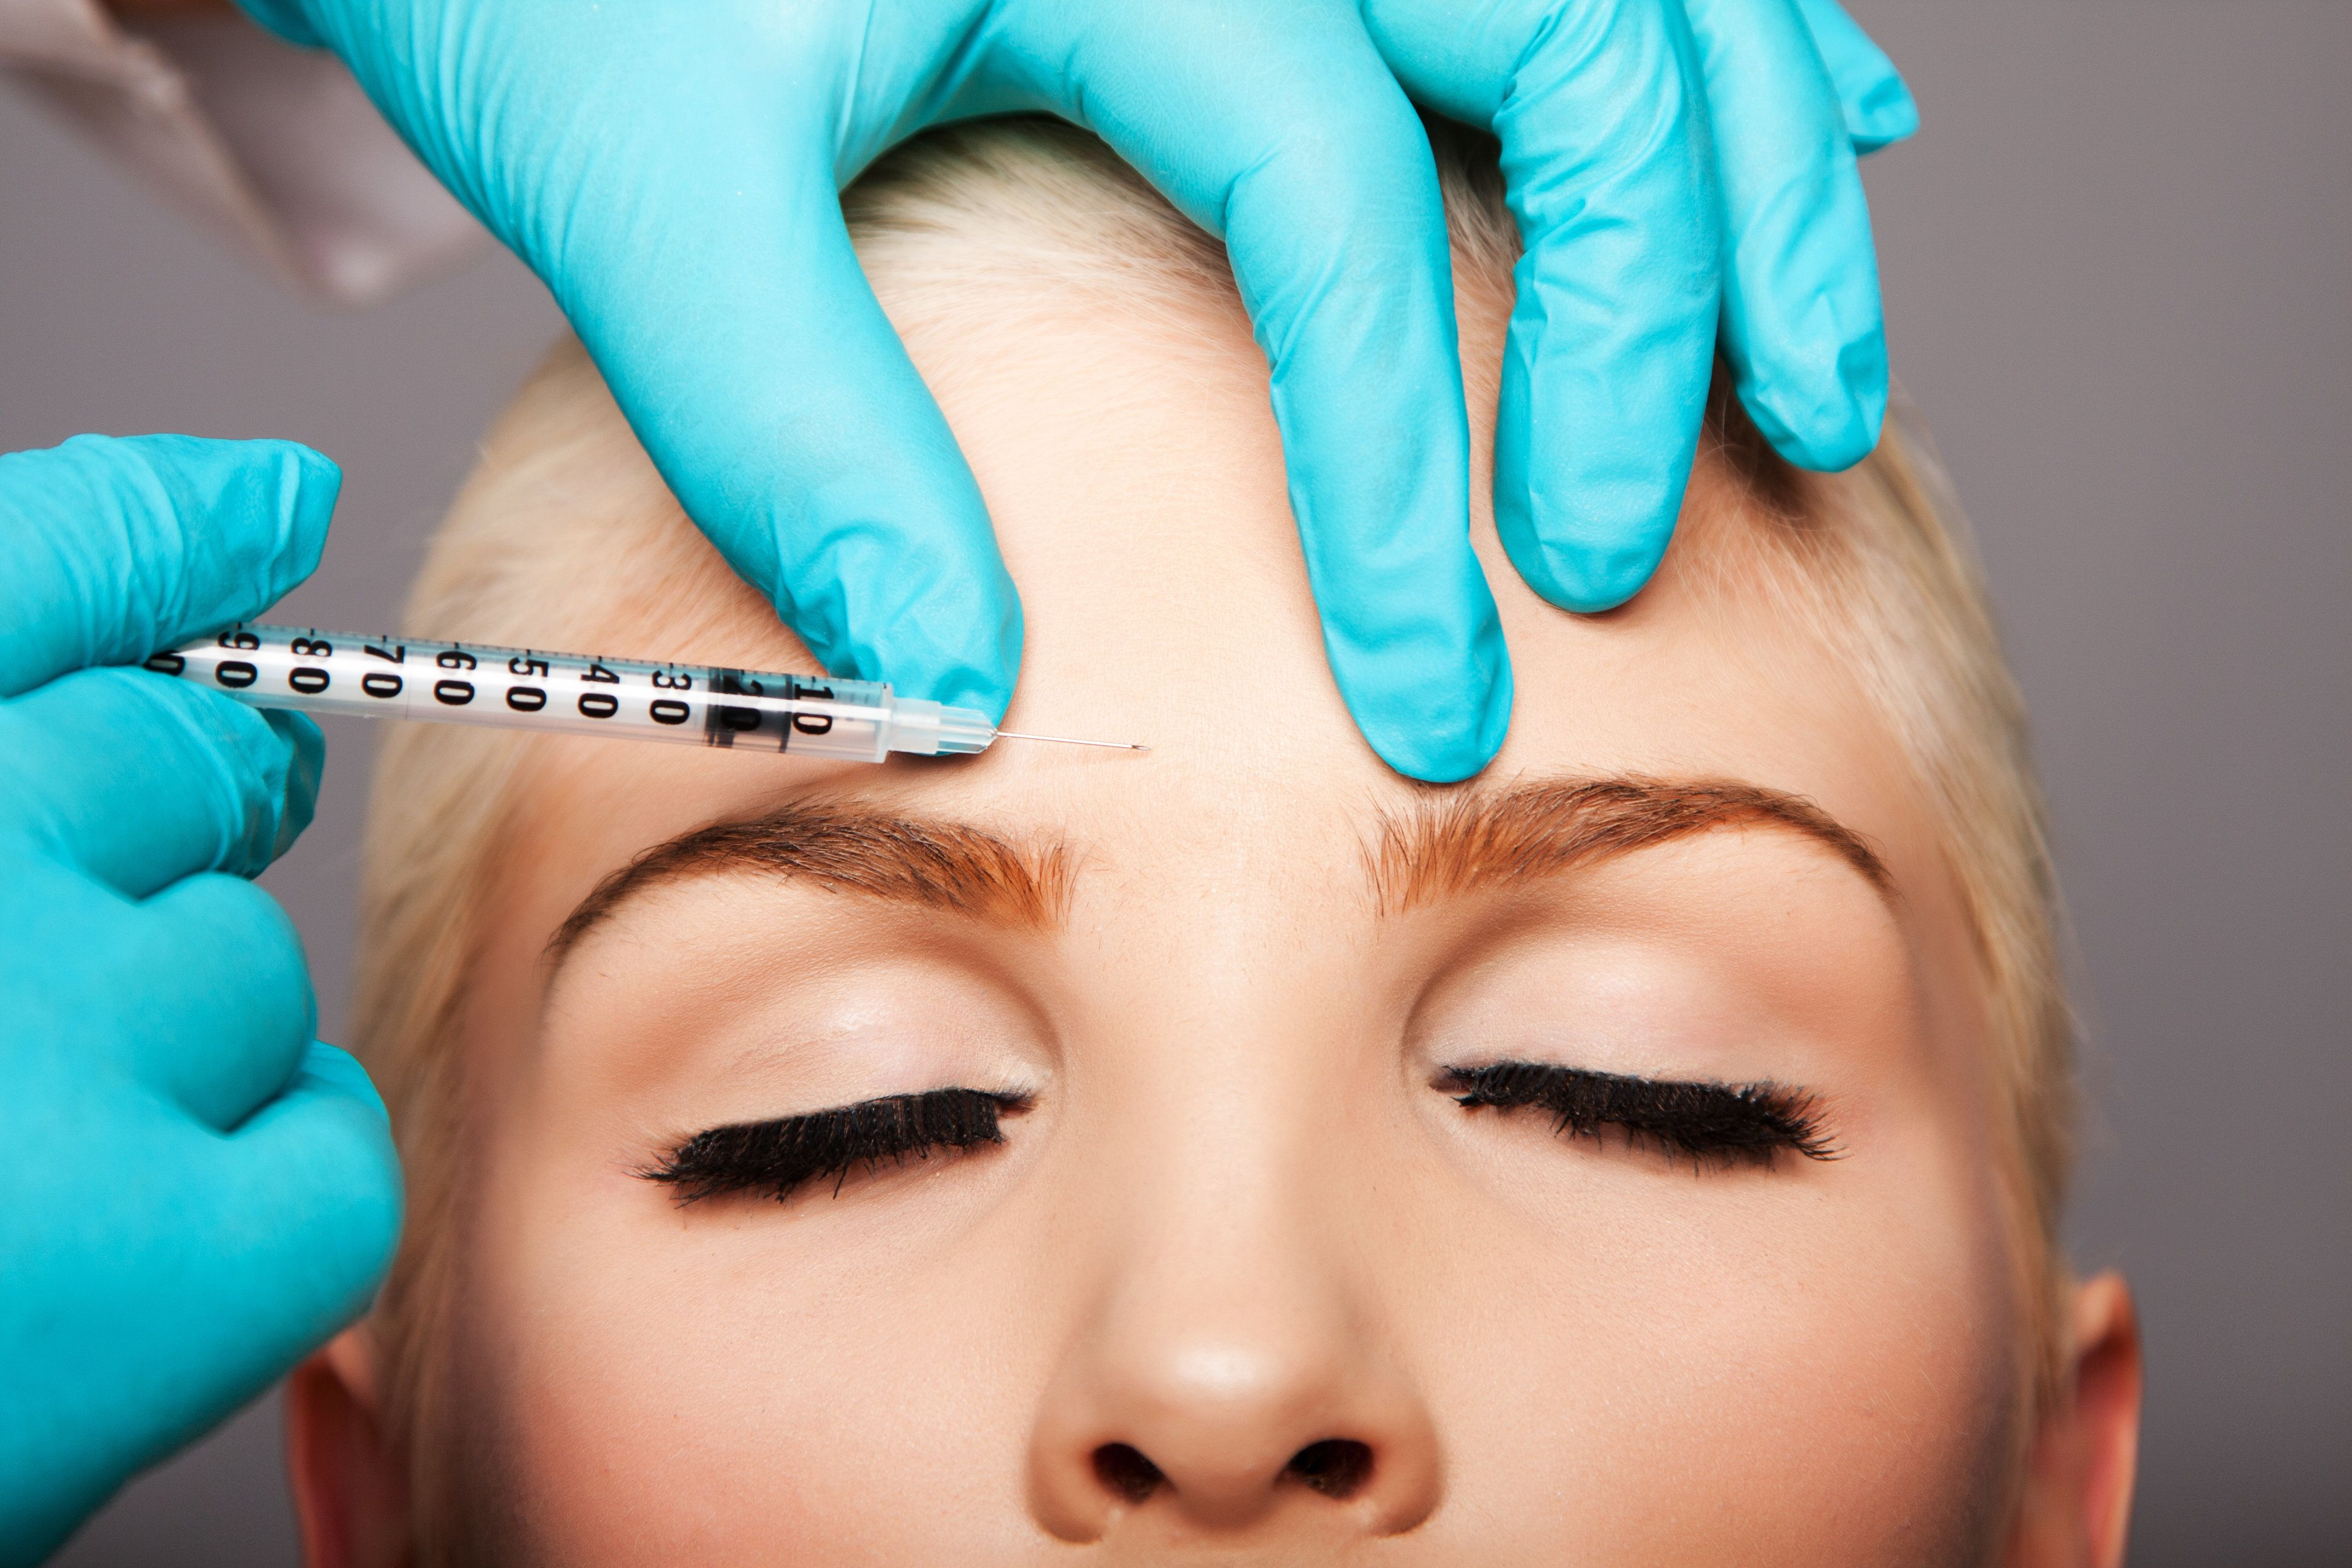 HIGH STREET FACELIFT: Superdrug Is Now Offering 'Botox' And